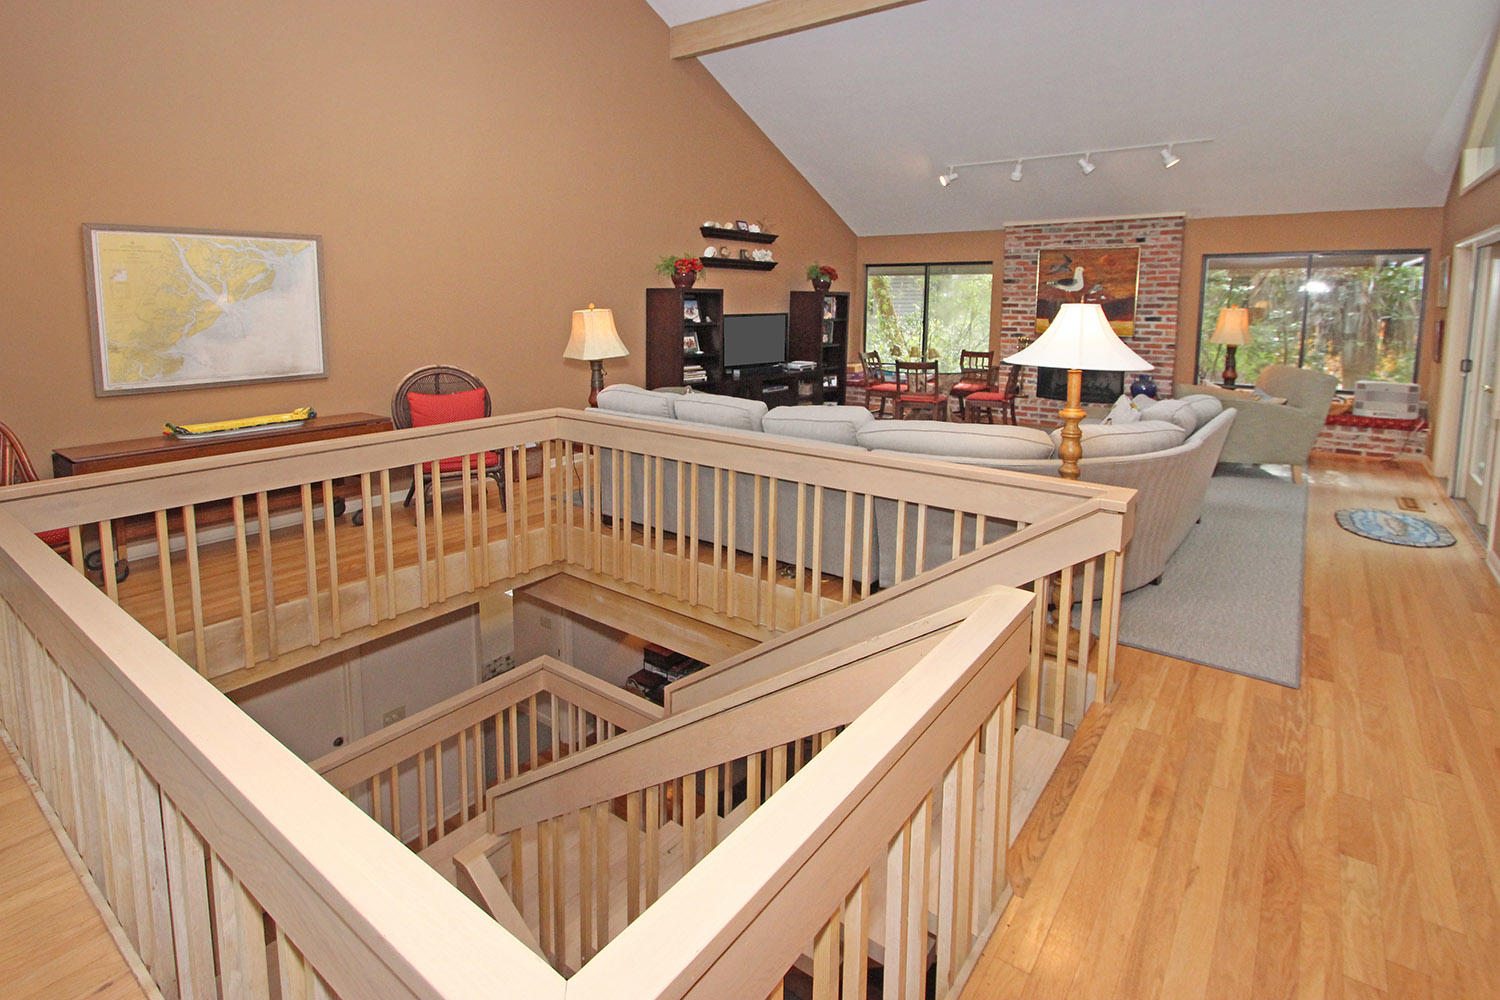 Living room from top of stairway